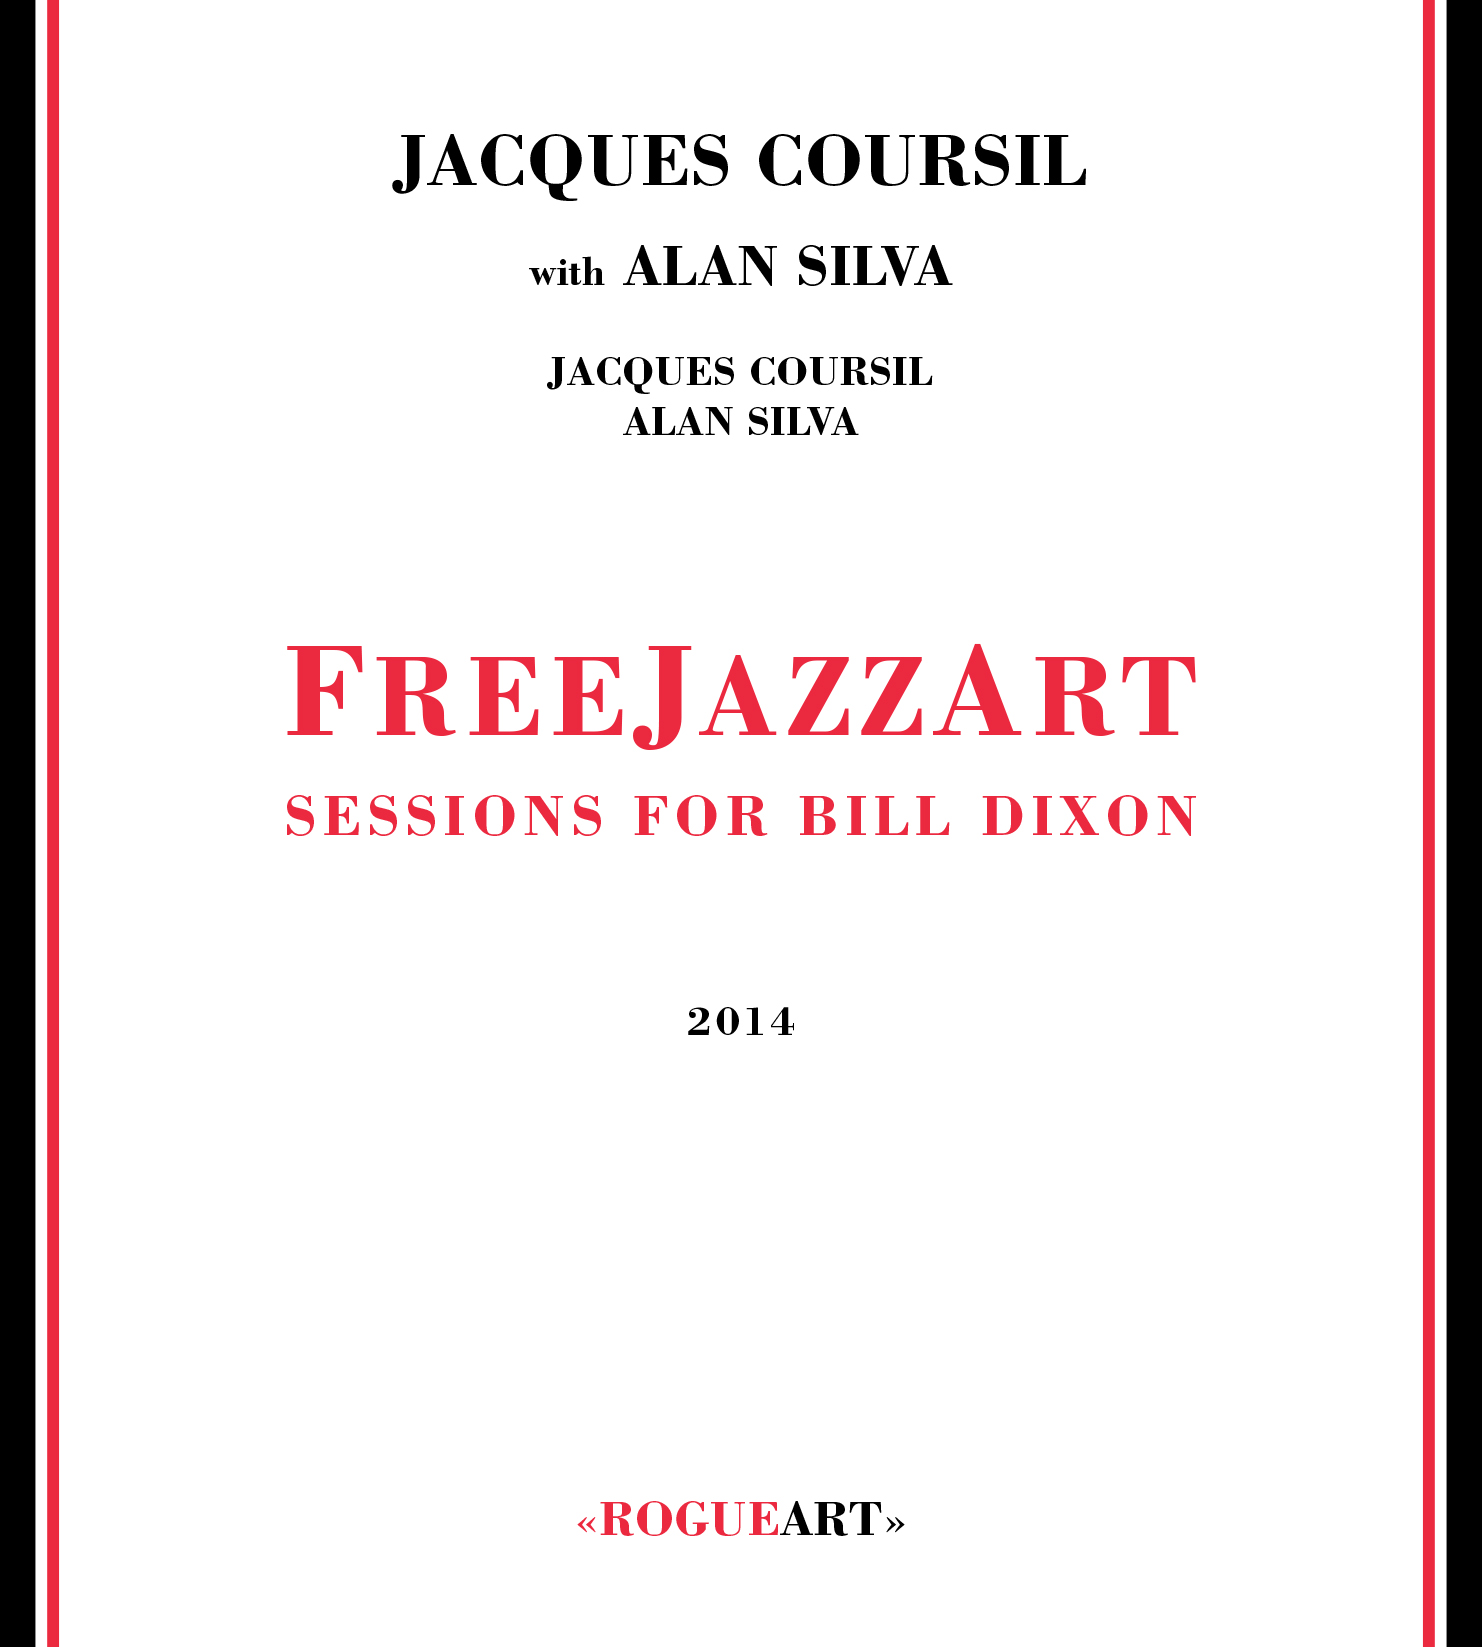 Circuito Jackson Rees : Jacques coursil with alan silva freejazzart u2013 sessions for bill